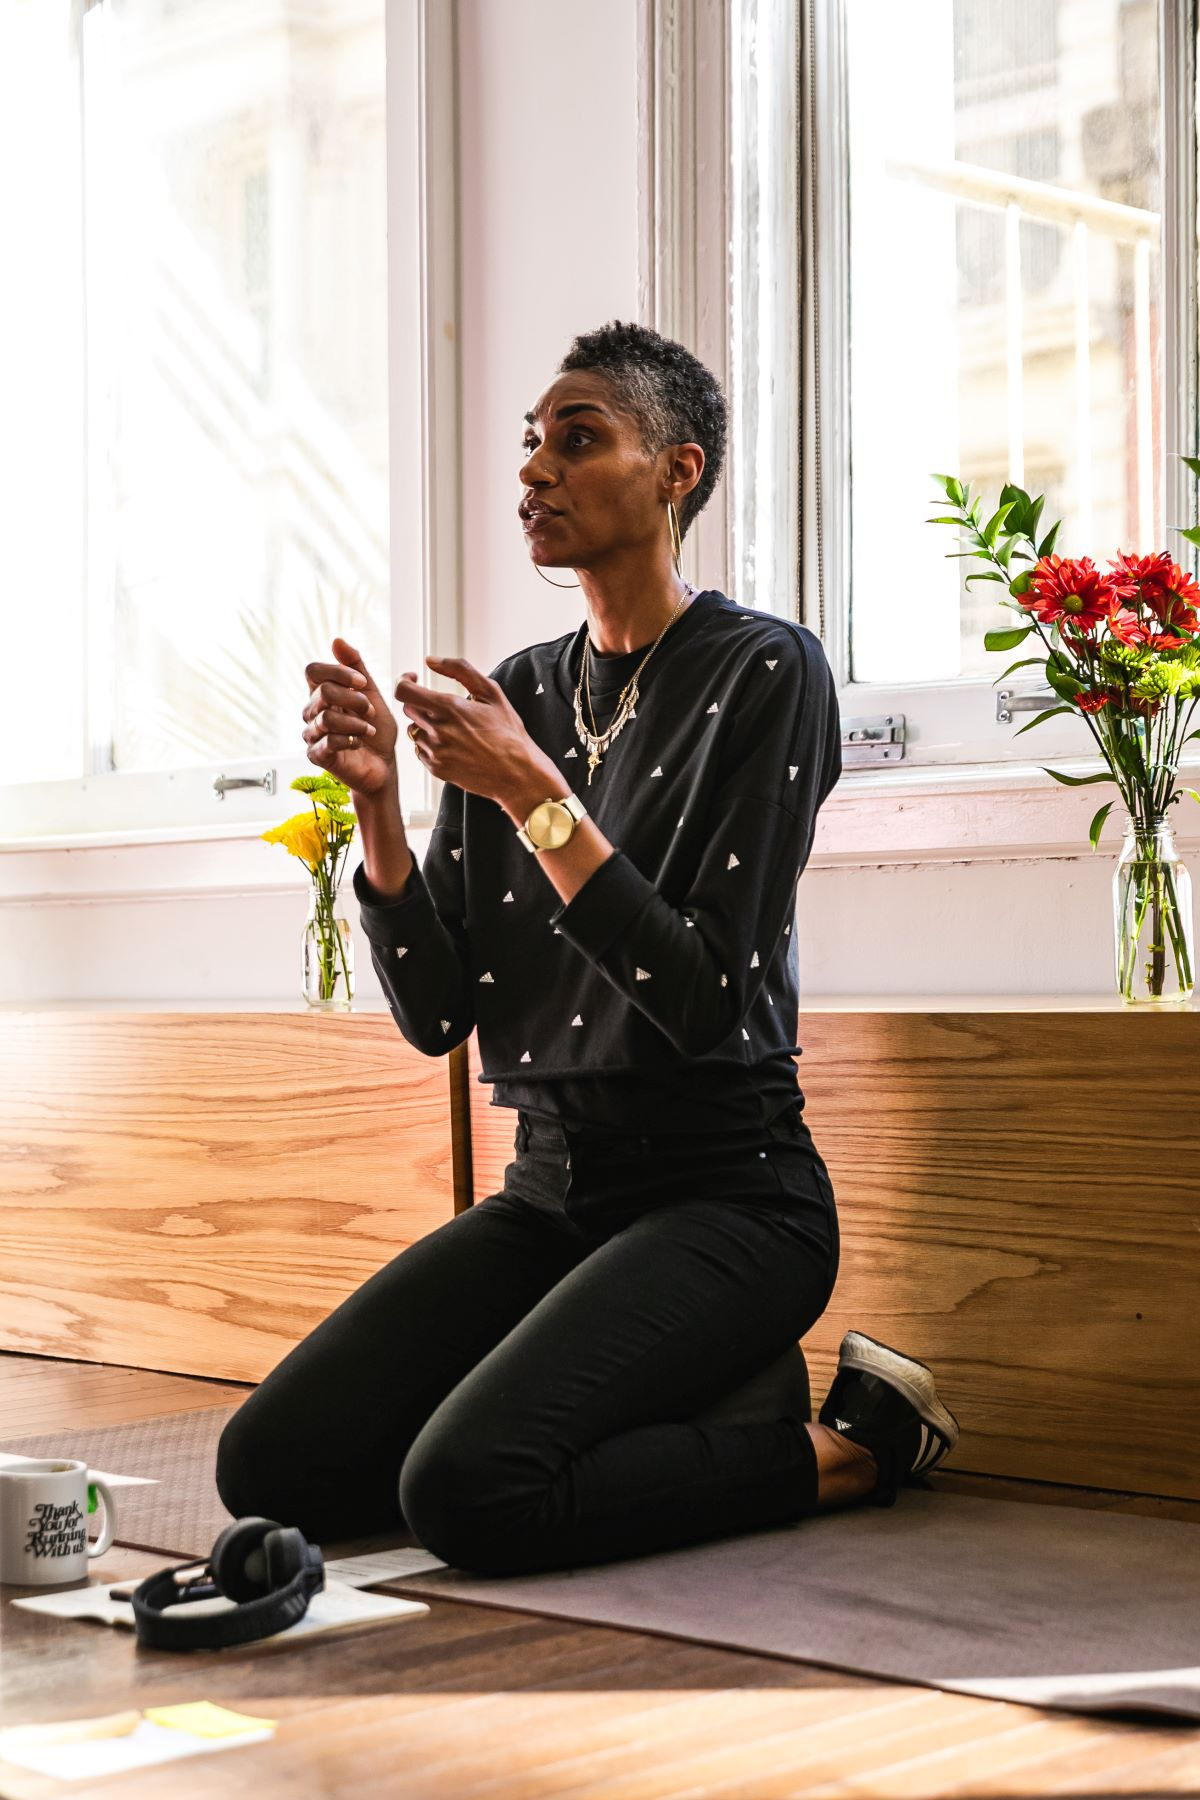 Adidas Running mindfulness coach Ameerah Omar connects virtually with the community's athletes during the coronavirus pandemic.